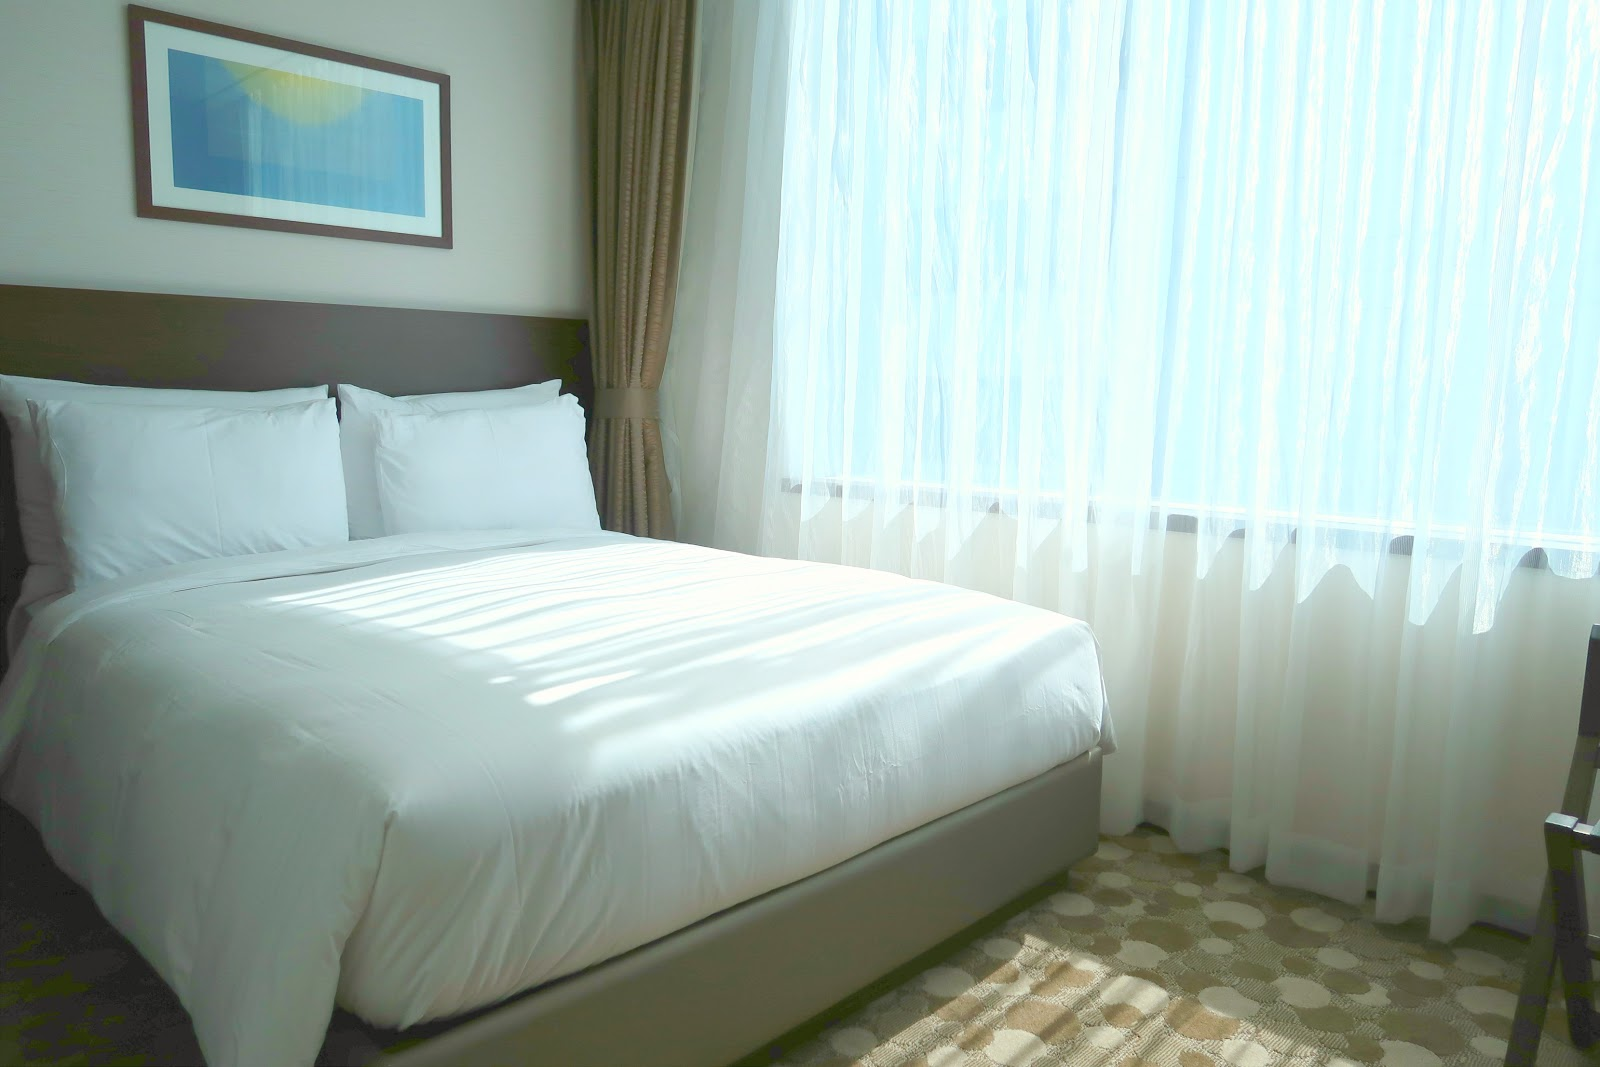 Lotte City Hotel Myeongdong, Seoul review travel blog